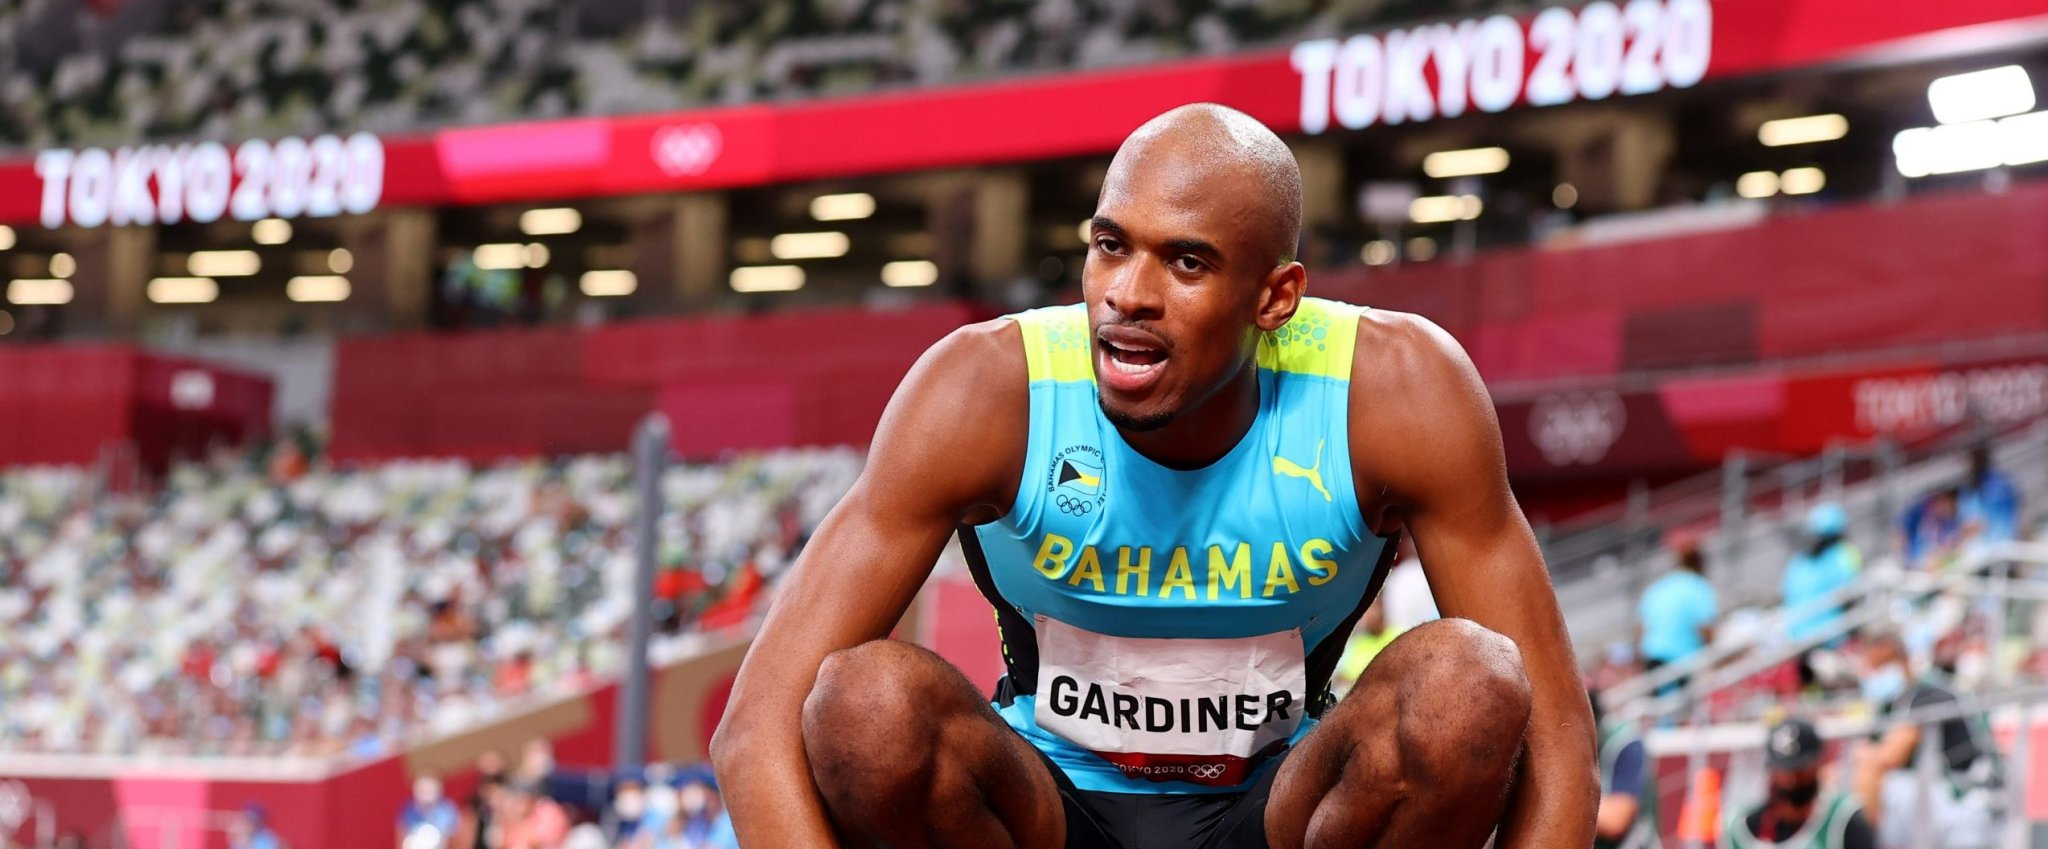 Olympics-Athletics-Gardiner takes 400m gold on a night of firsts